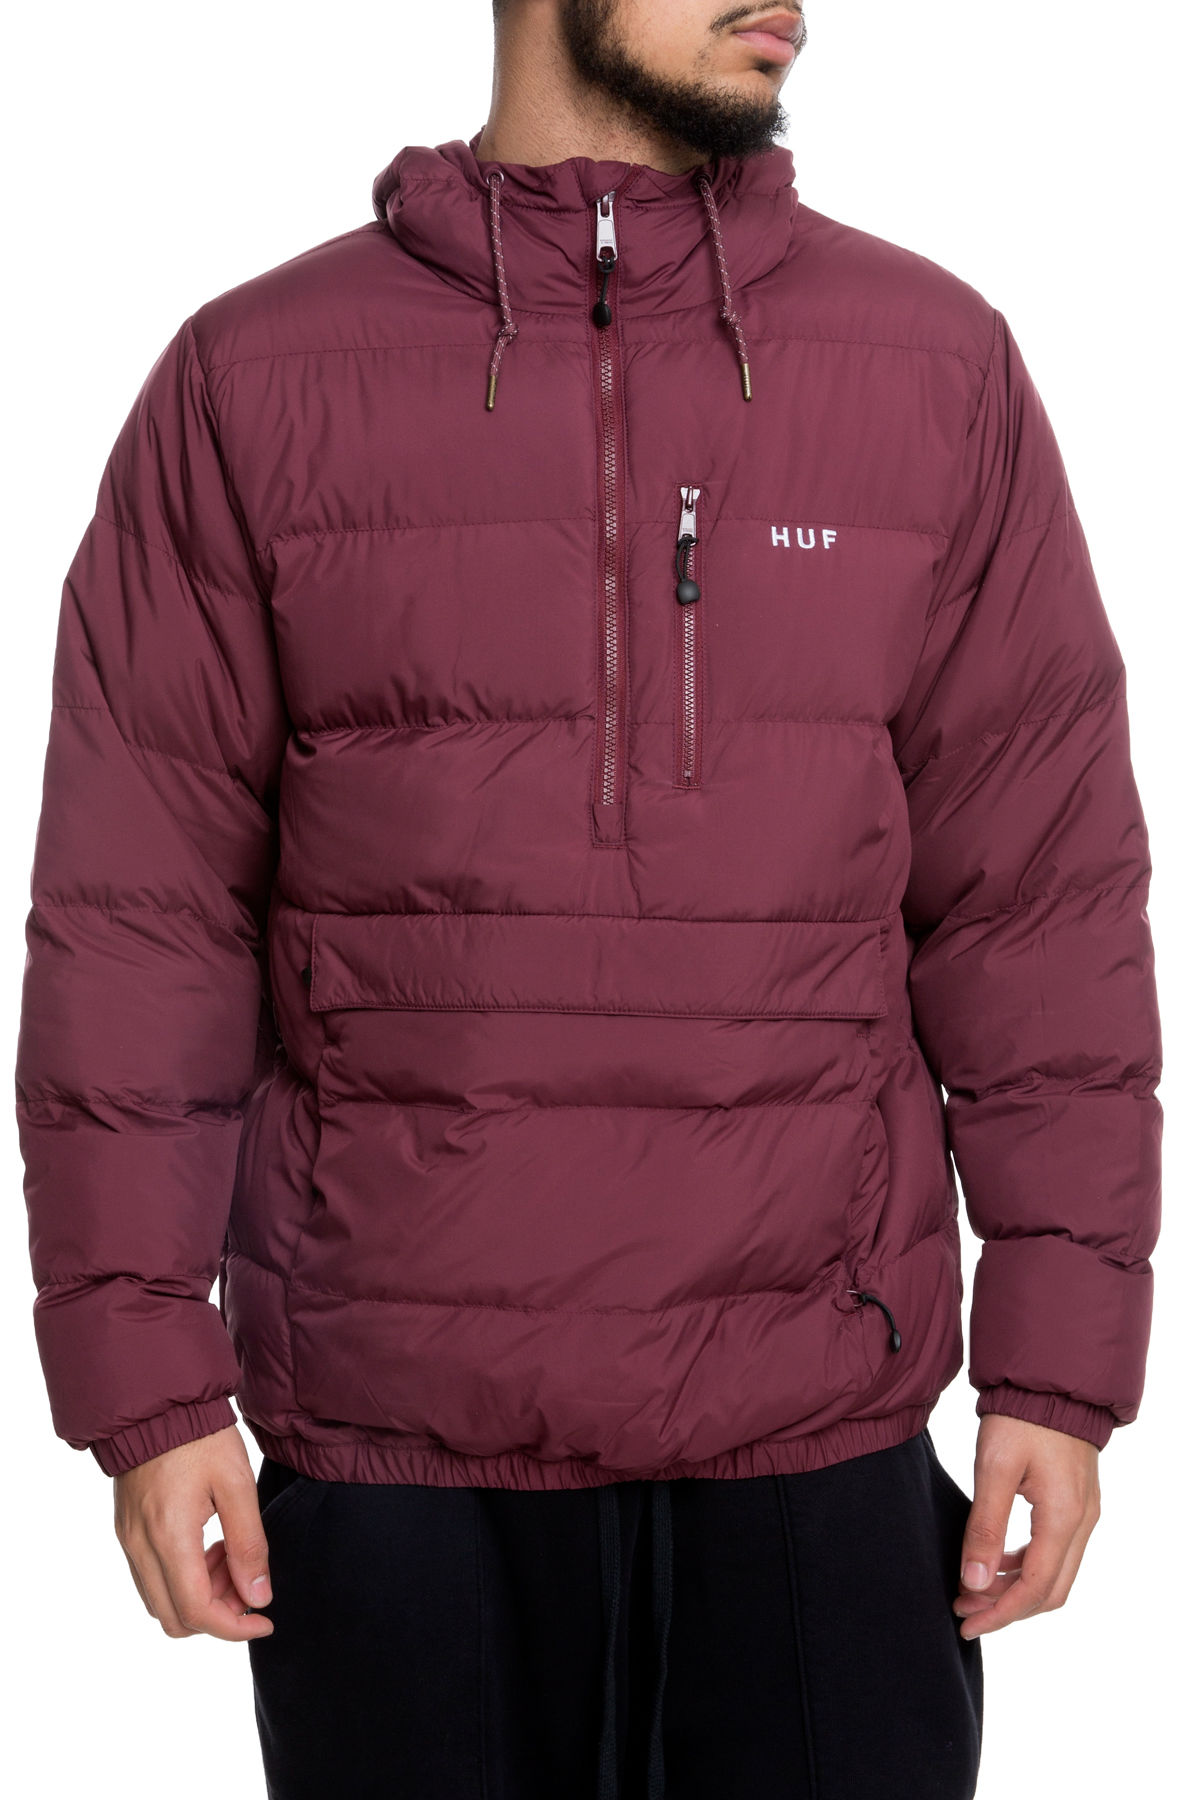 Image of The Everest Jacket in Port Royale